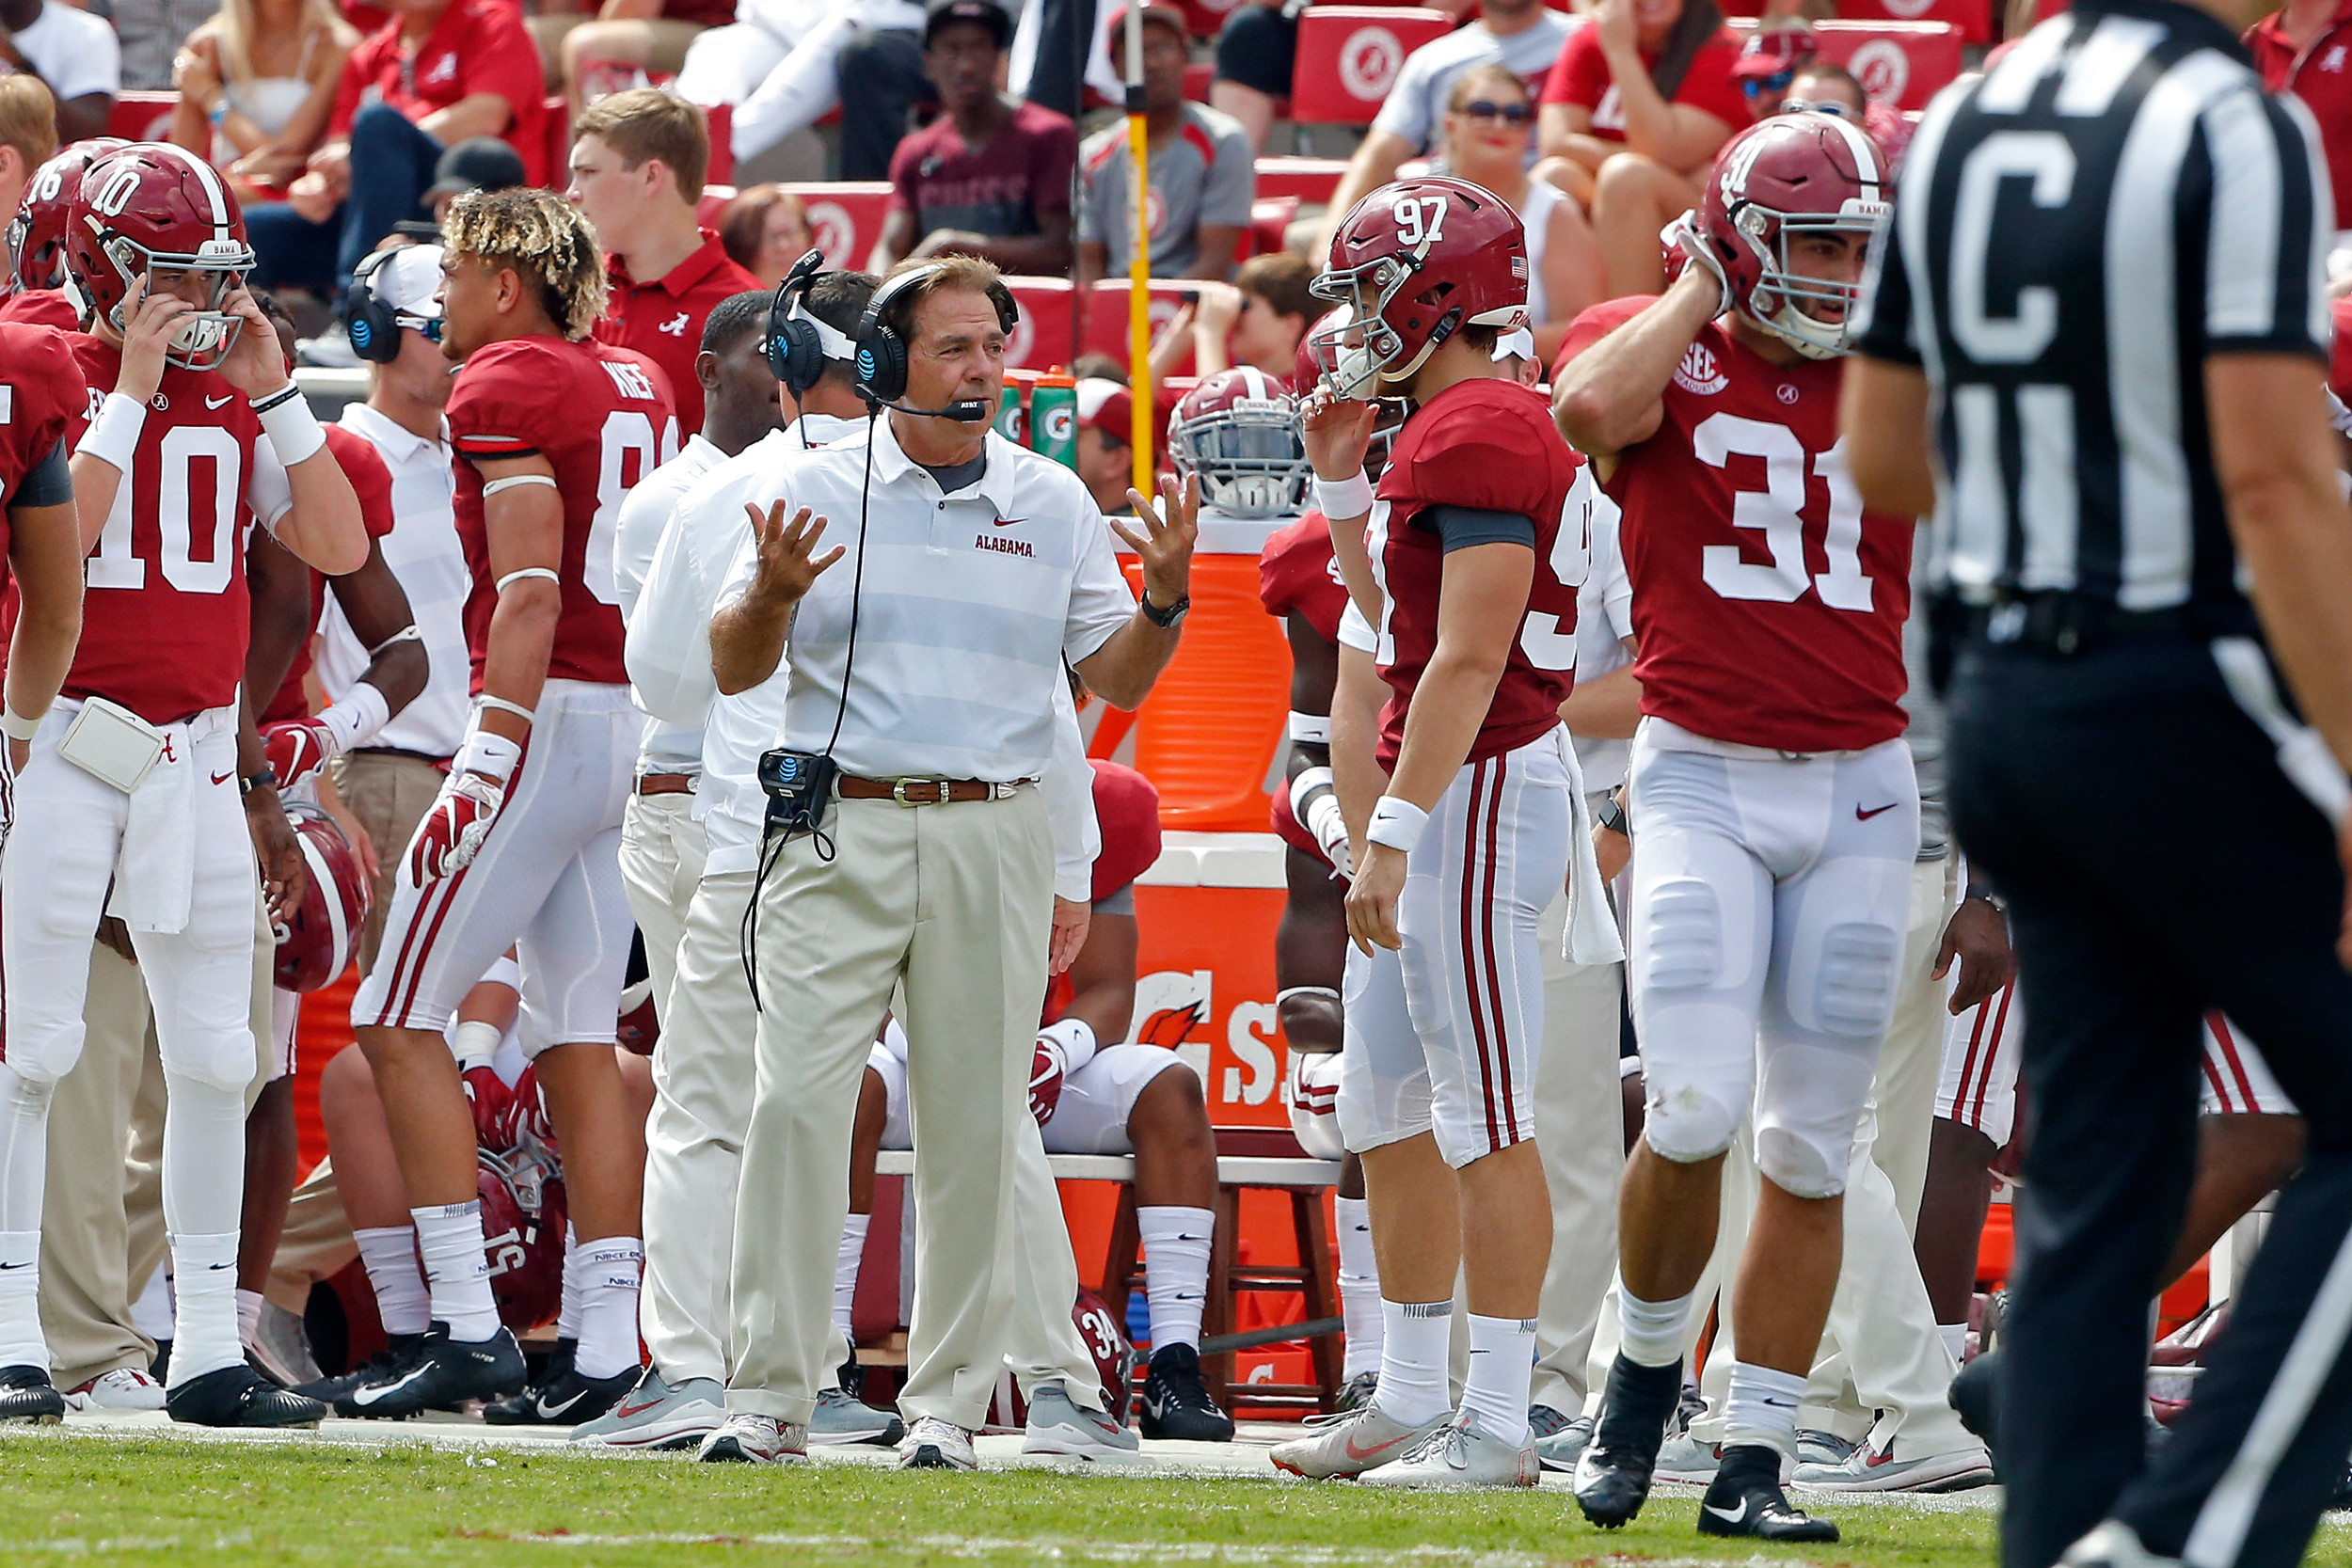 After Alabama Crimson Tide place kicker Joseph Bulovas (97) missed a PAT by hitting the right upright head coach Nick Saban has a talk with him at Bryant-Denny Stadium in Tuscaloosa, Al on September 29, 2018. Jason Clark / Daily Mountain Eagle